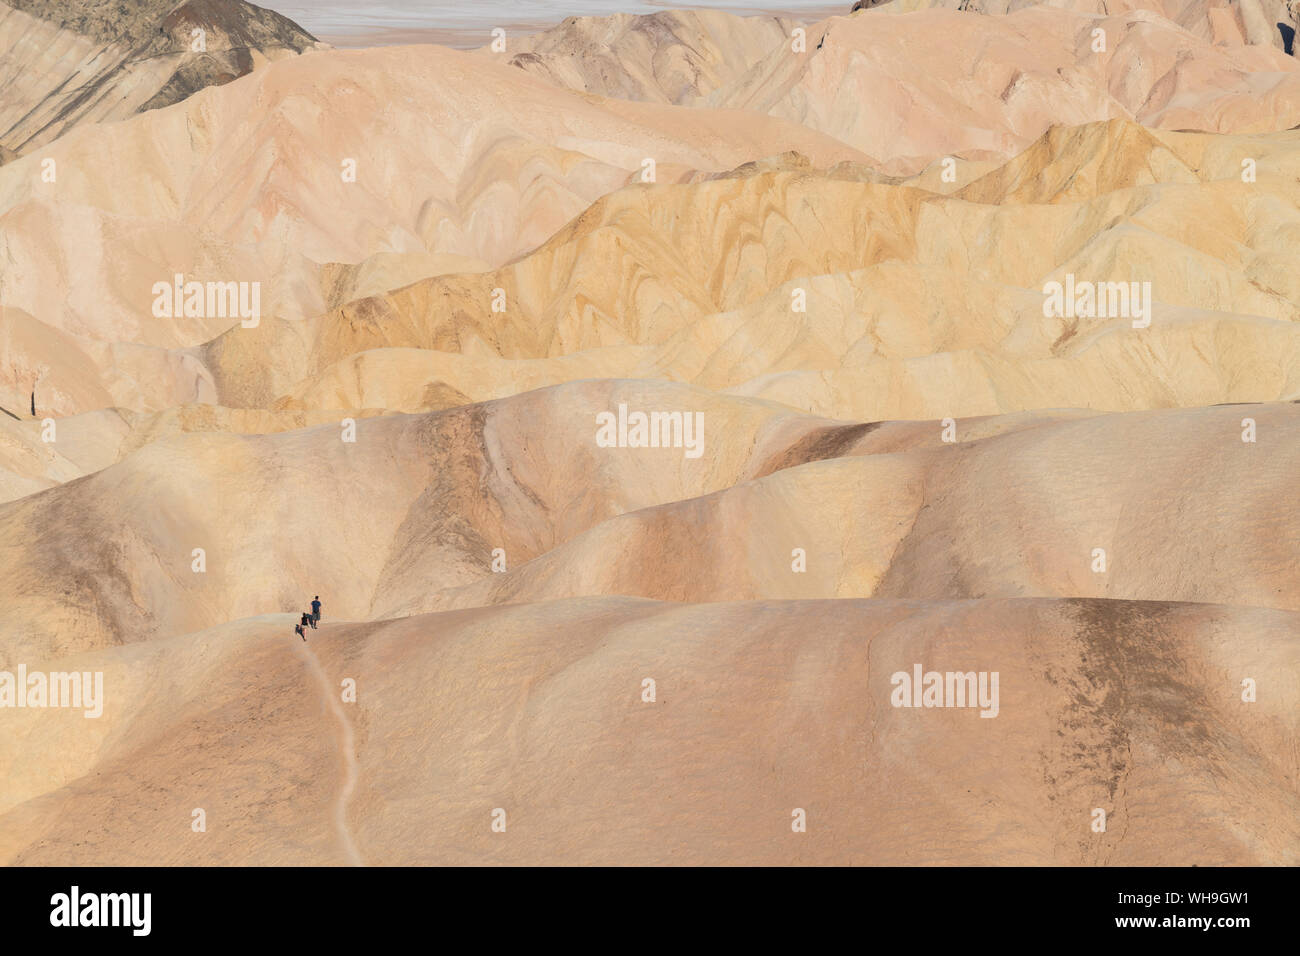 Zabriskie Point in Death Valley National Park, California, United States of America, North America Stock Photo